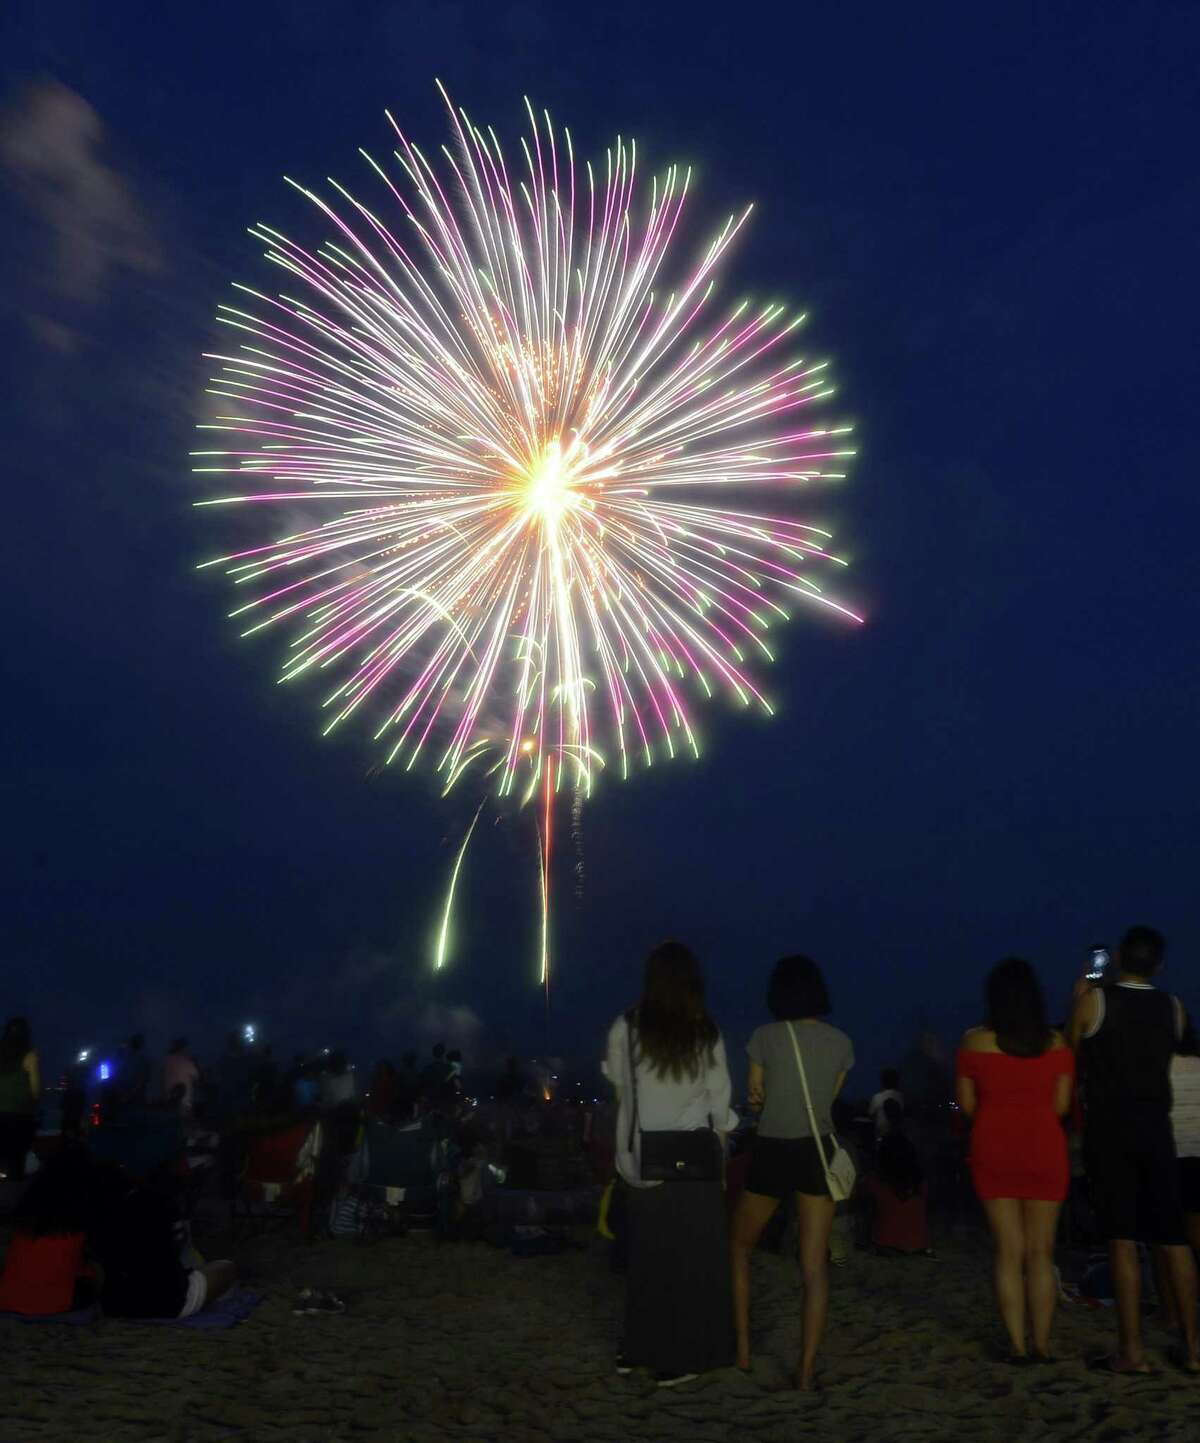 A fireworks spectacular lights up the skies over Cummings Park and Beach June 30, 2017 in Stamford, Connecticut.